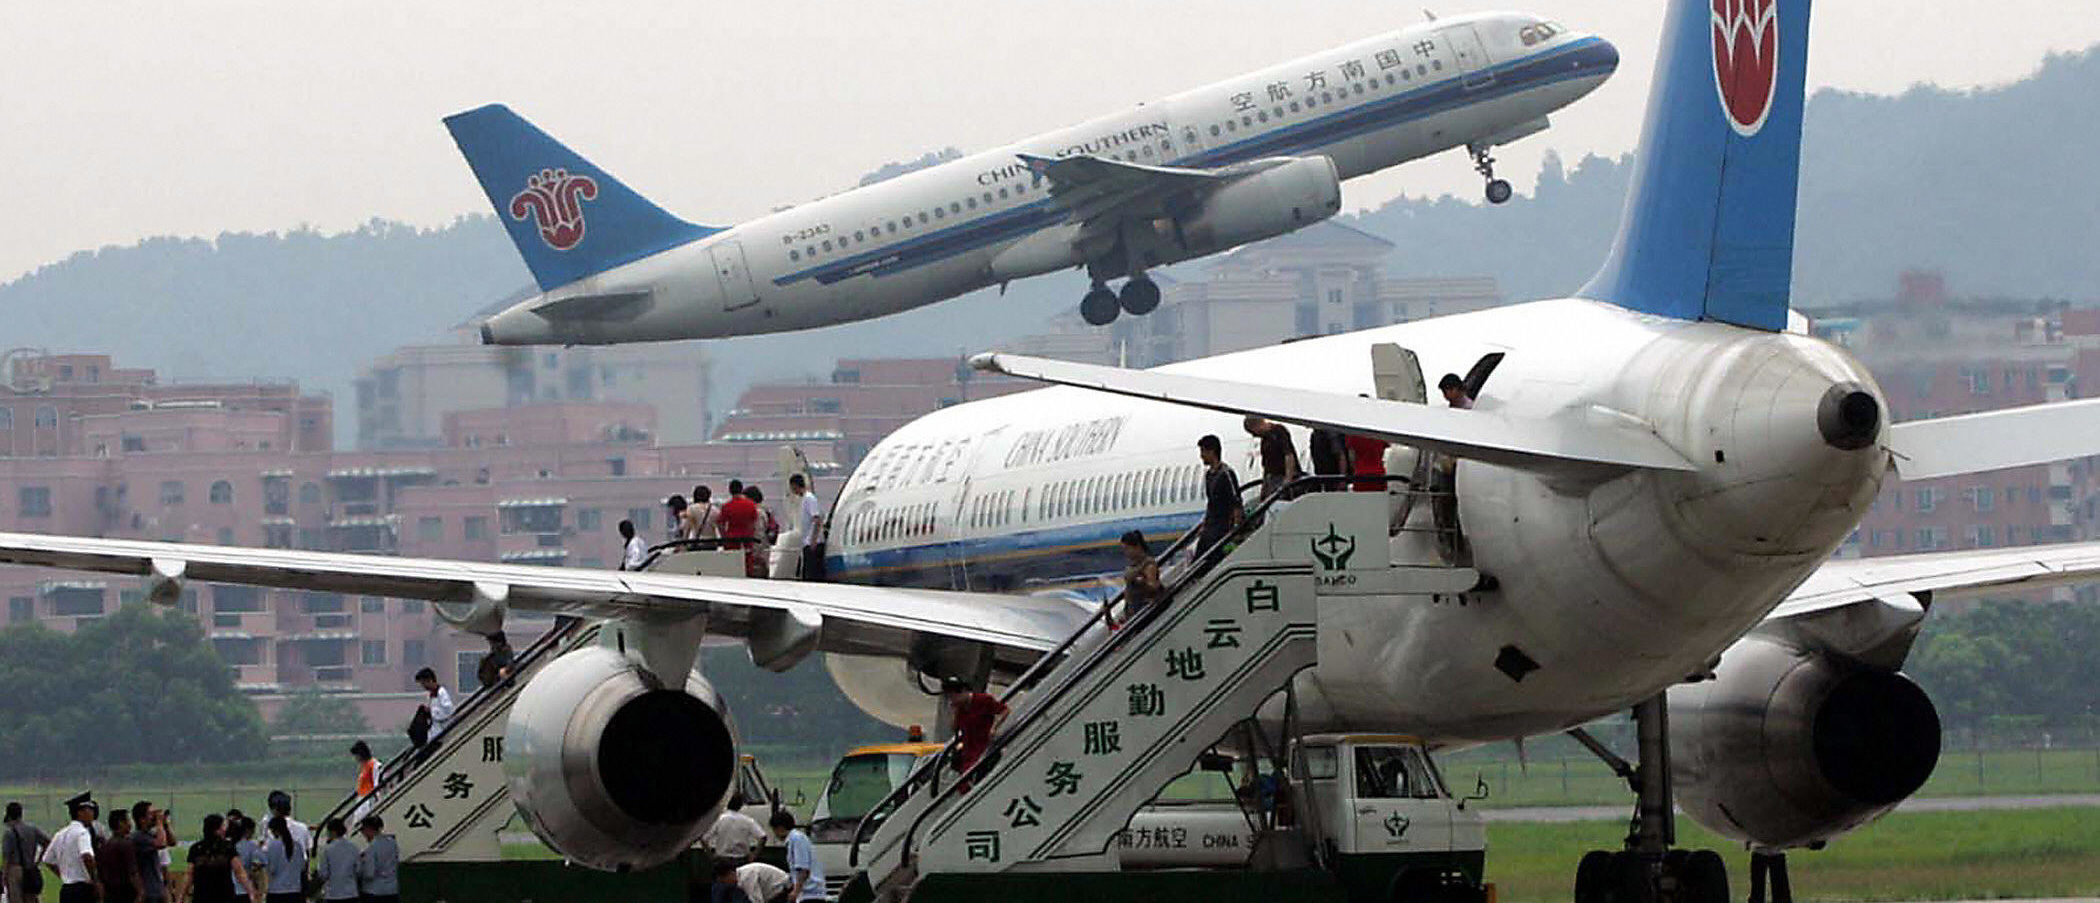 GUANGZHOU, CHINA: Passengers board the last of the China Southern airlines plane to take off from the old Baiyun airport in Guangzhou, southern China's Guangdong province 04 August 2004, prior to the opening of the new airport tomorrow. The southern Chinese city of Guangzhou opens a huge new international airport this week capable of handling 25 million passengers a year in a direct challenge to neighbouring Hong Kong's role as an Asian hub, as the first flight will take off from the 19 billion yuan (2.4 billion-dollar) state-of-the-art Baiyun International Airport on Thursday, making China's third largest city a major player in Asia's aviation market. AFP PHOTO (Photo credit should read STR/AFP via Getty Images)